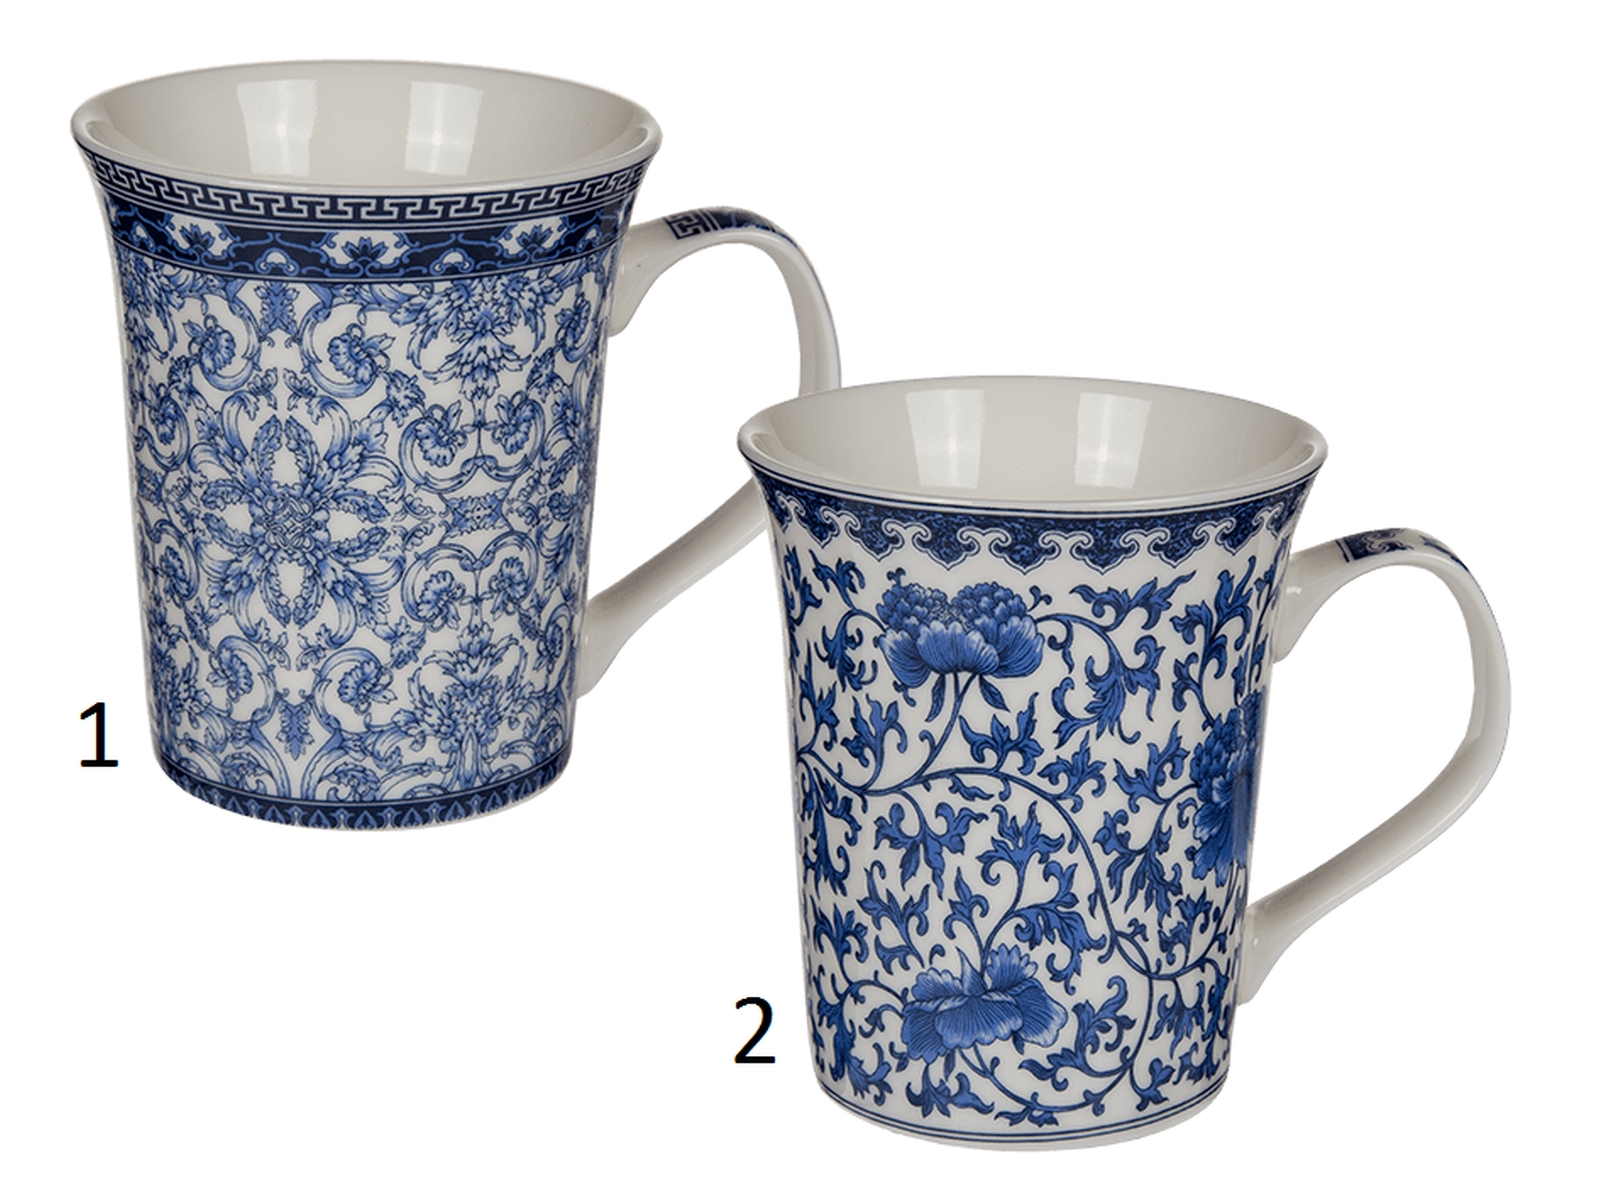 blau wei e new bone china porzellan tasse var 1 2 kleine bl ten kaffeebecher ebay. Black Bedroom Furniture Sets. Home Design Ideas